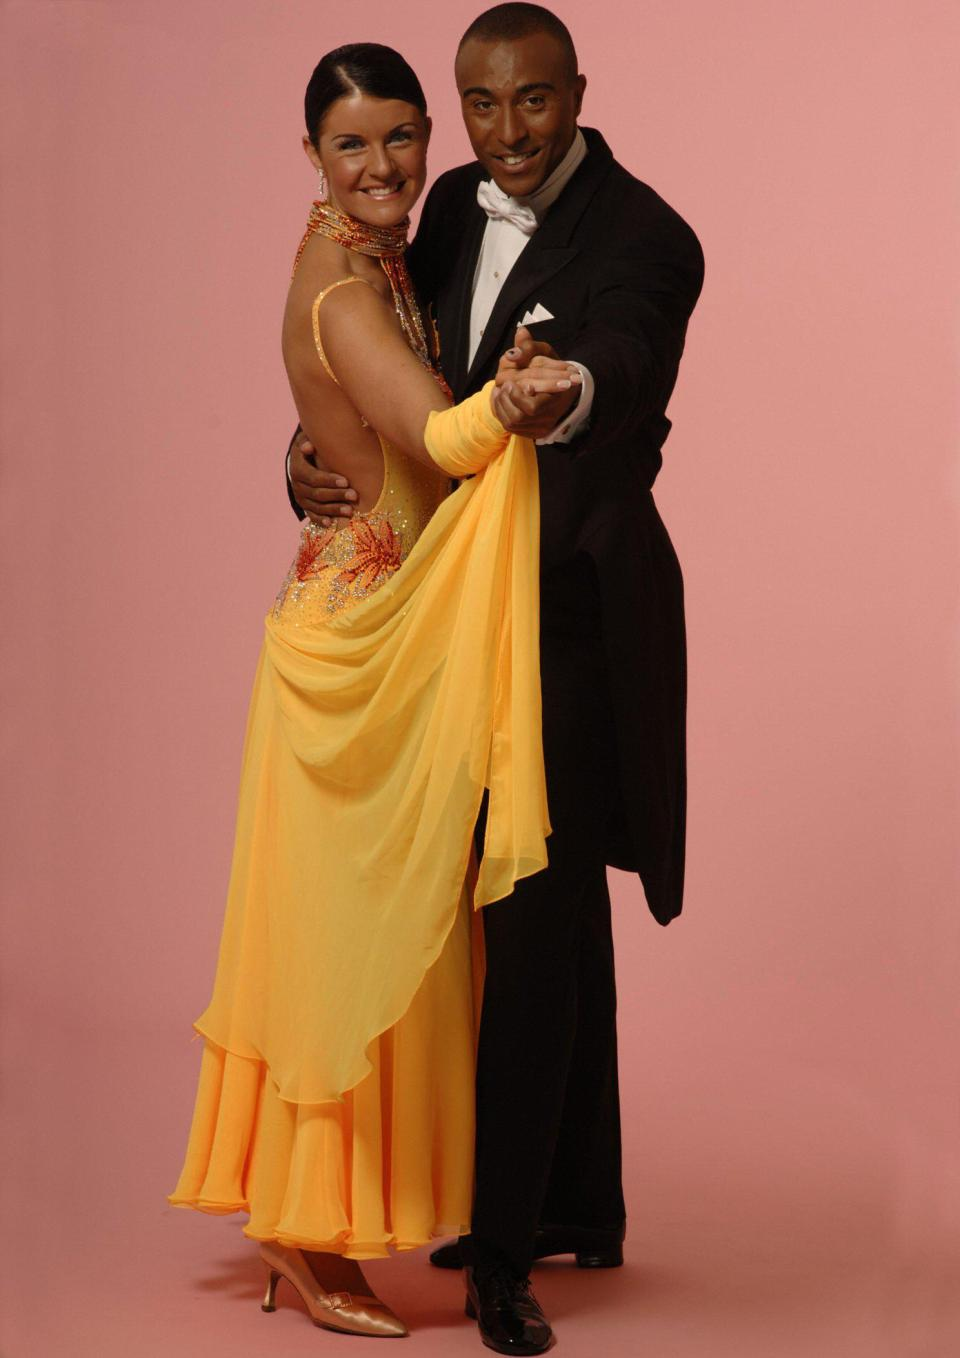 Colin Jackson was runner-up in the third series of Strictly Come Dancing